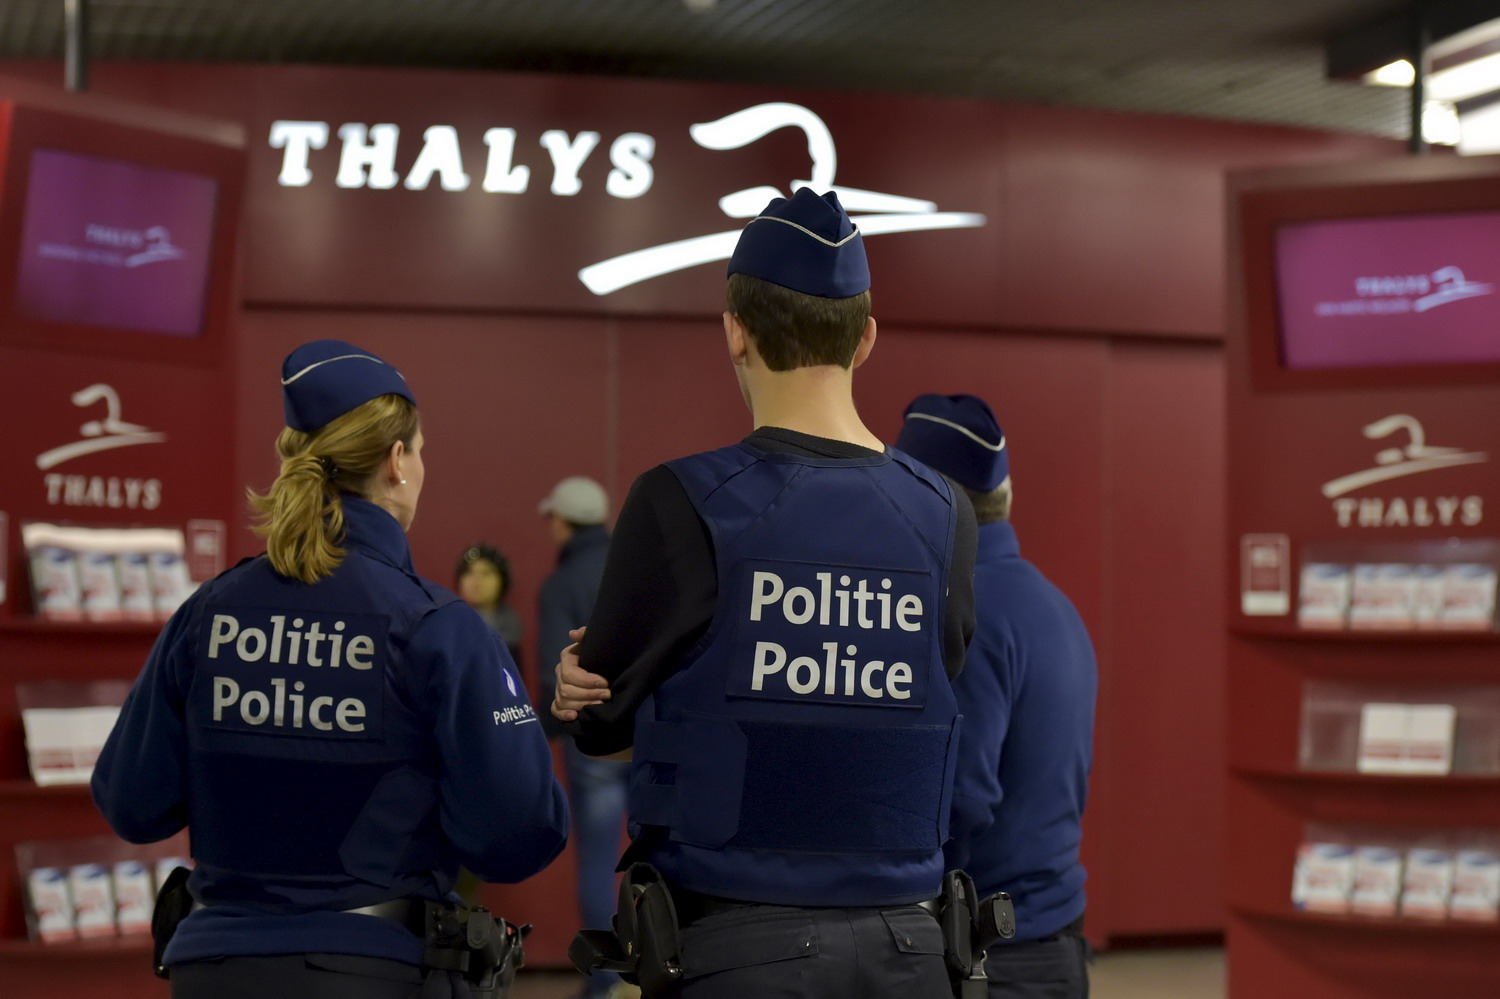 Belgian connection: three held in Brussels over Paris attacks